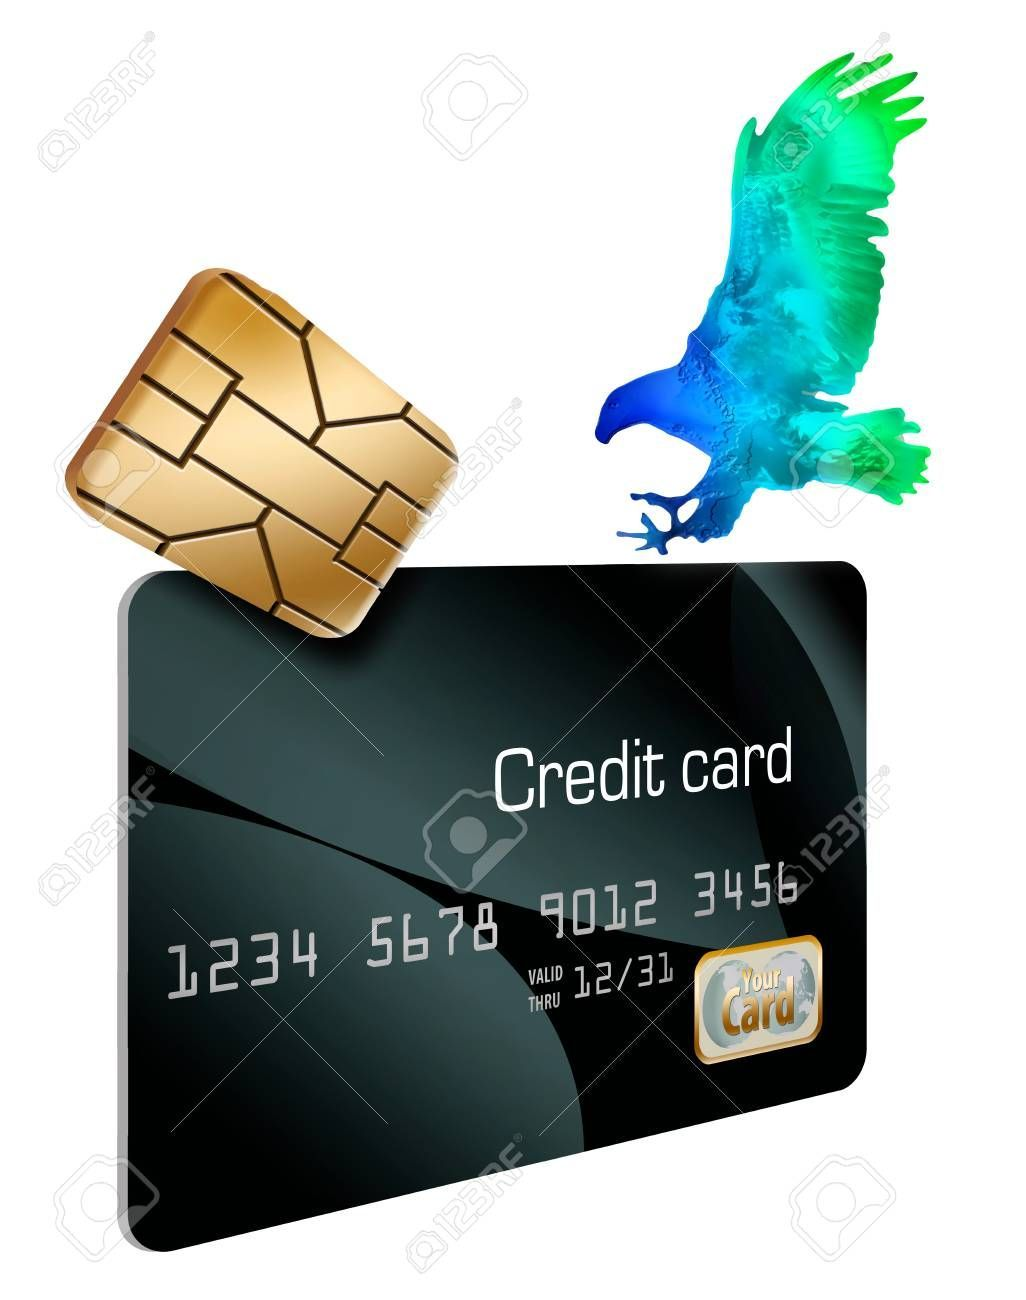 credit card illustration The EMV security chip on credit cards and a hologram eagle landing on the card are seen in this illustration about credit card security